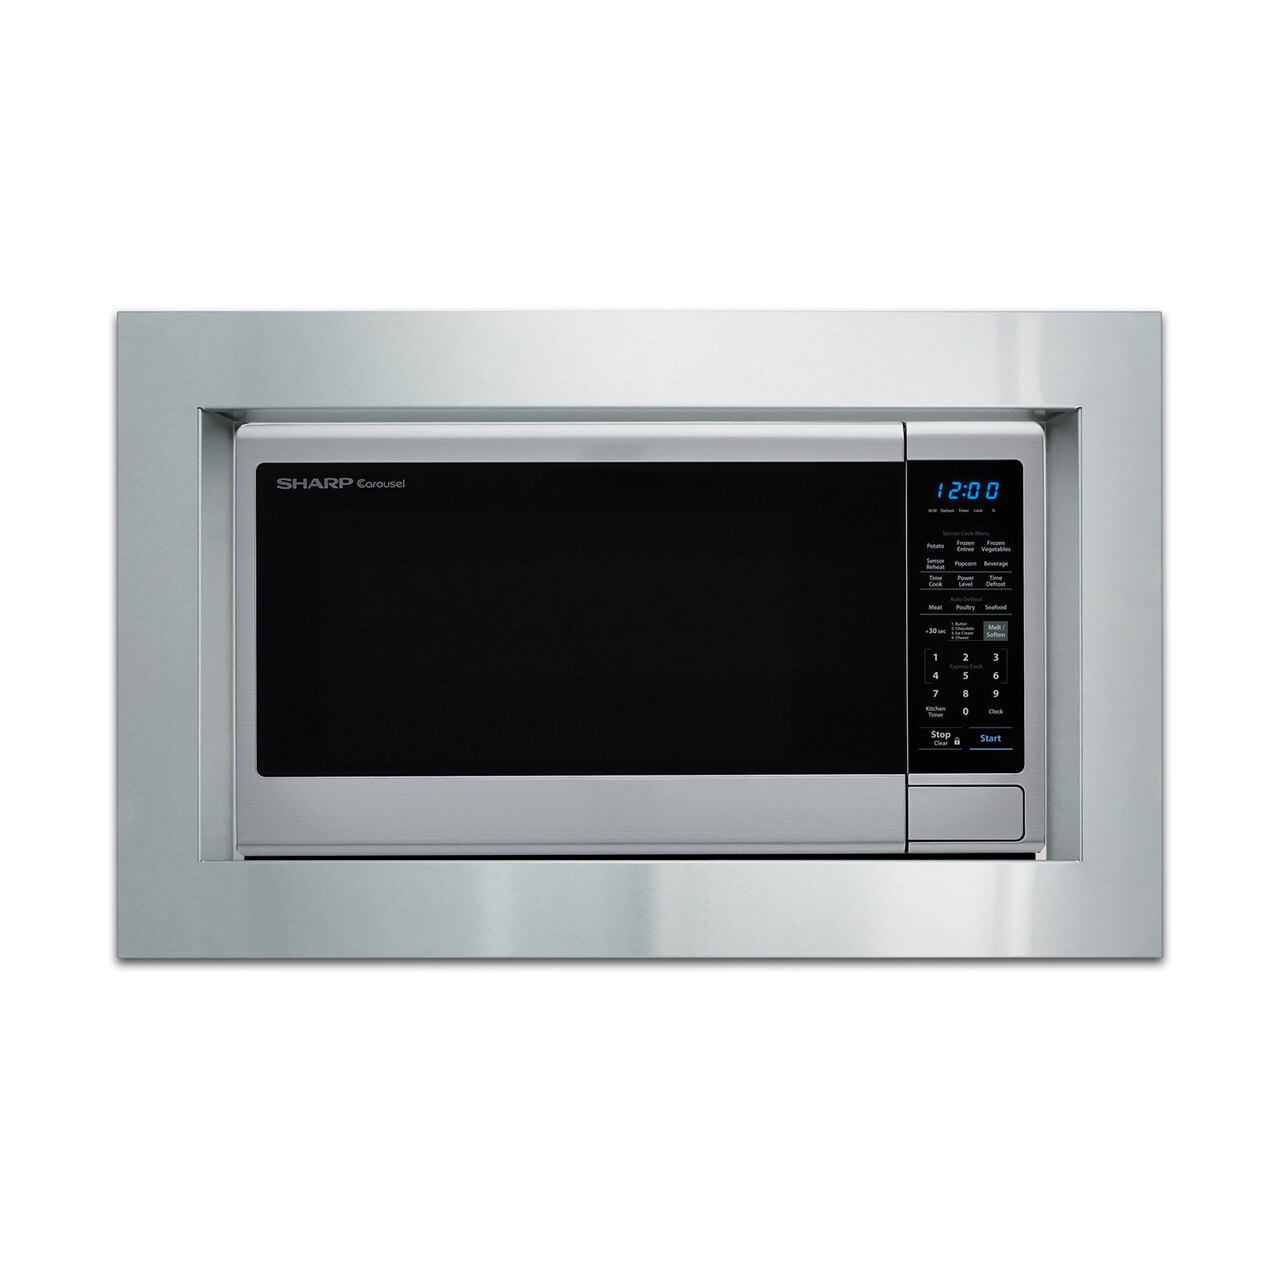 "Sharp 30"" Built-in Trim Kit (RK49S30) on SMC1843CM Microwave.   *Microwave not included"